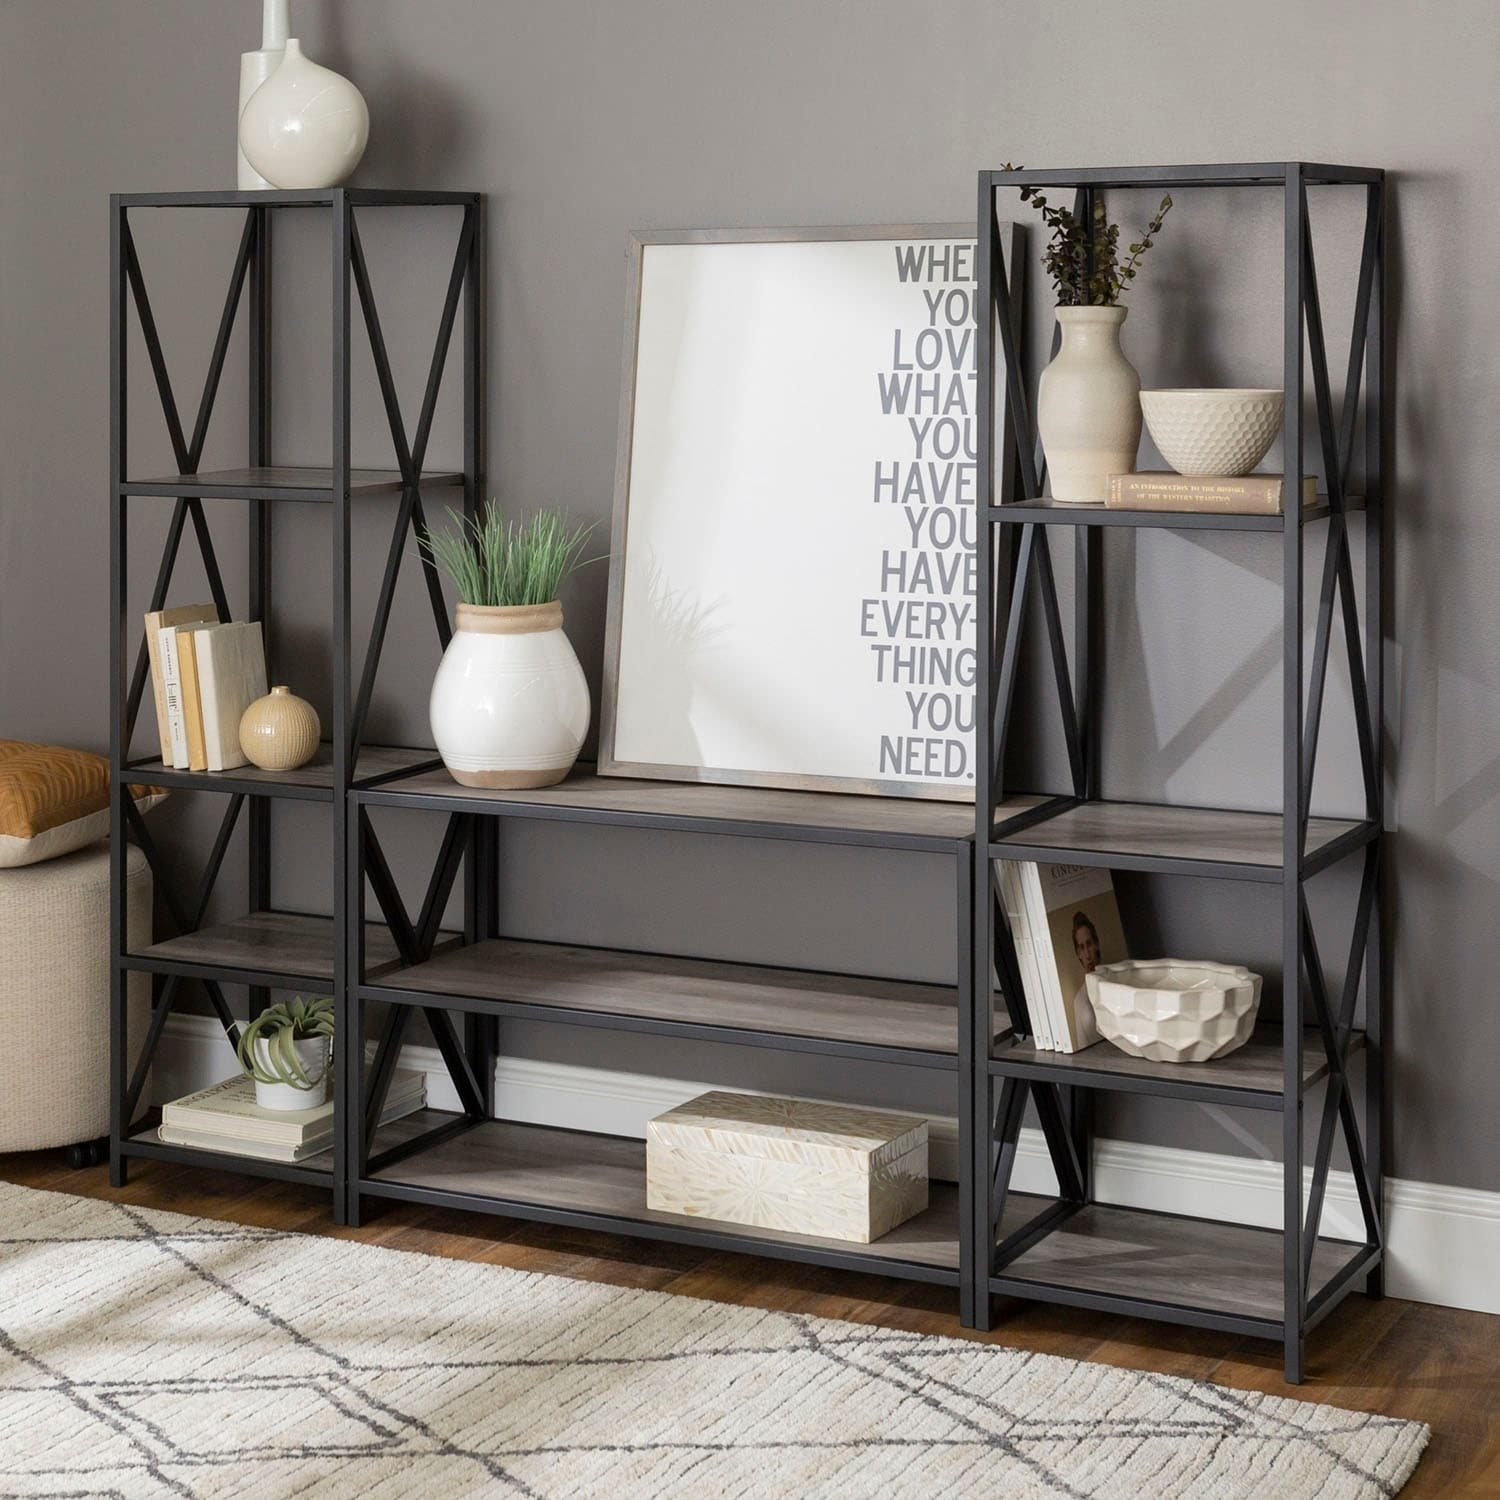 3 Piece Rustic Industrial Wood And Metal Bookcase Set Grey Wash